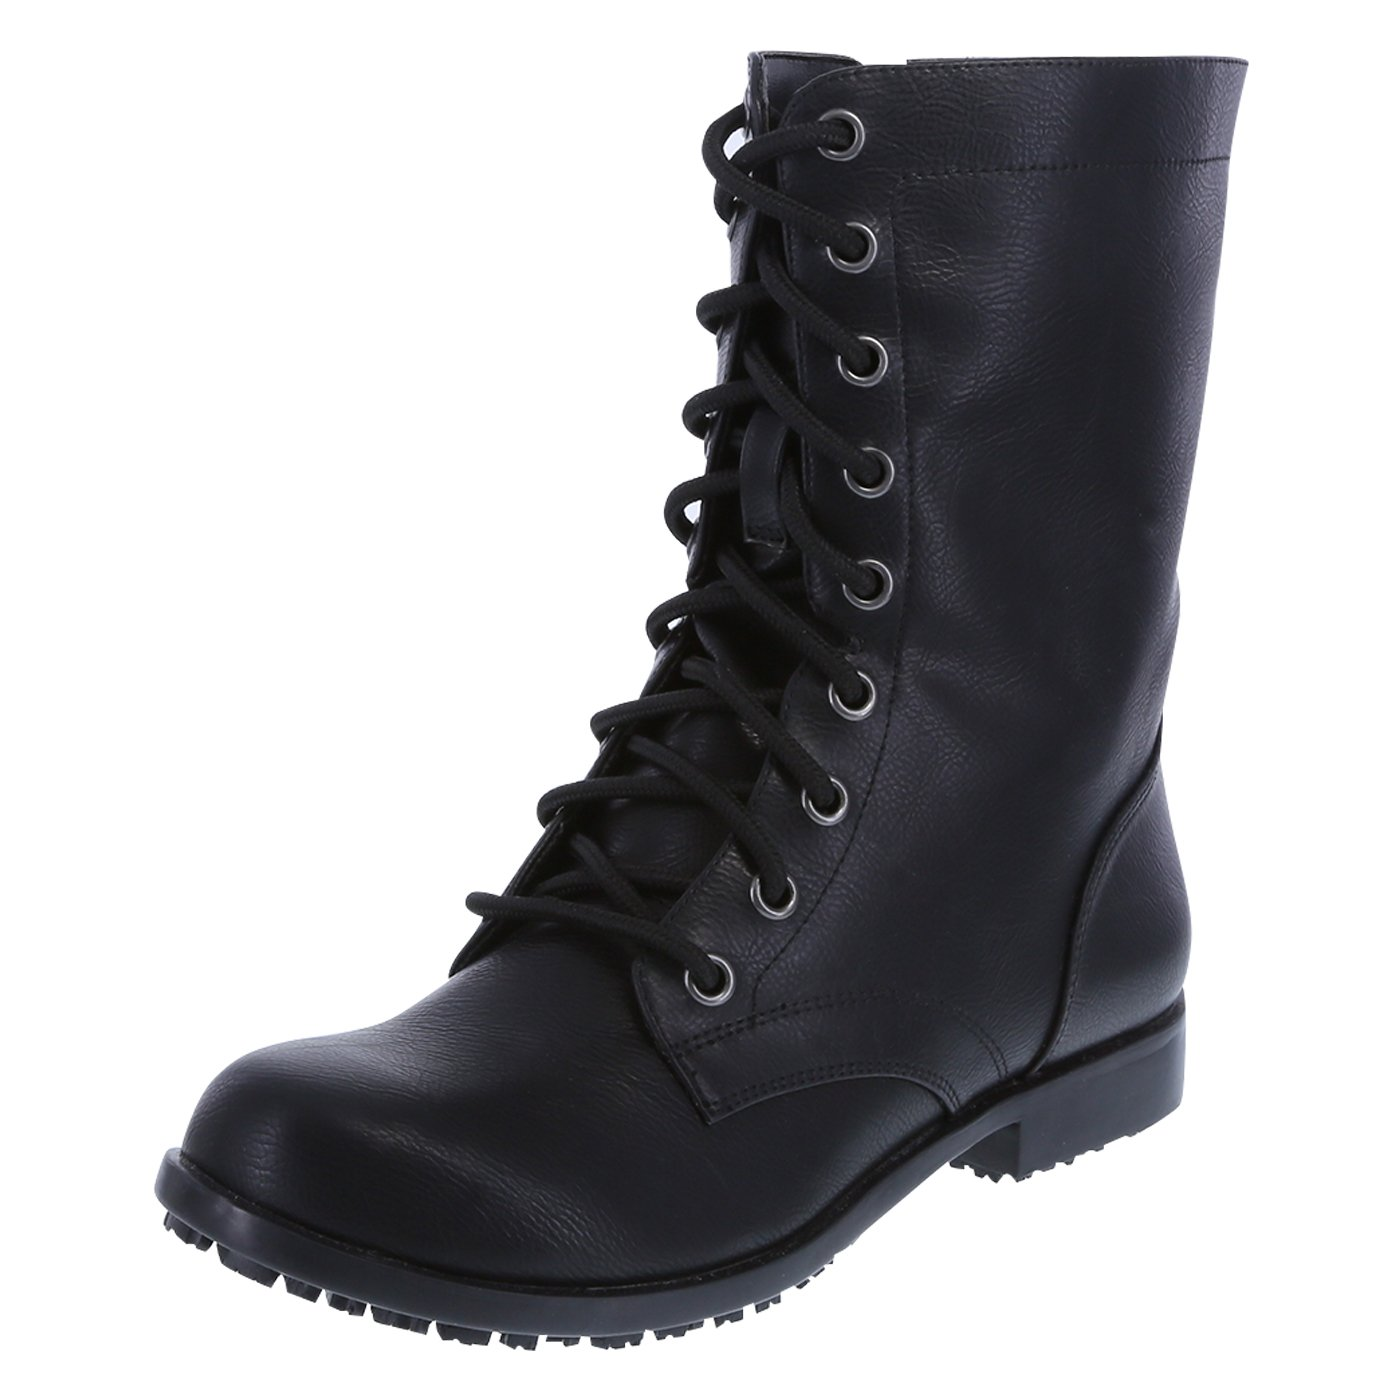 safeTstep Slip Resistant Women's Black Women's Brooke Lace-up with Zipper Boot 7 Regular